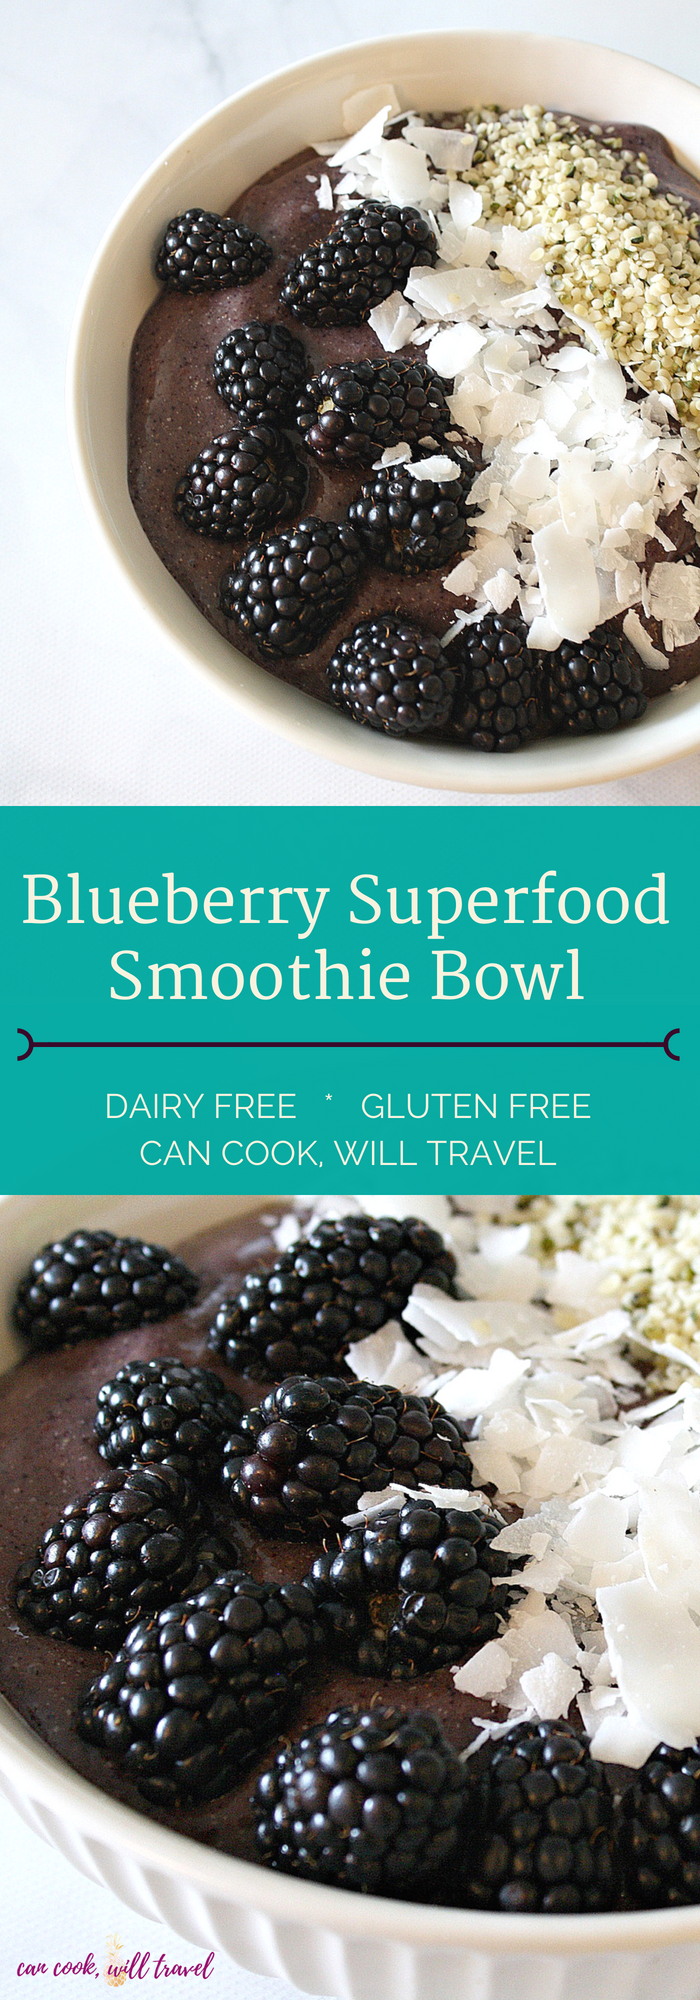 Blueberry Superfood Smoothie Bowl_Collage1